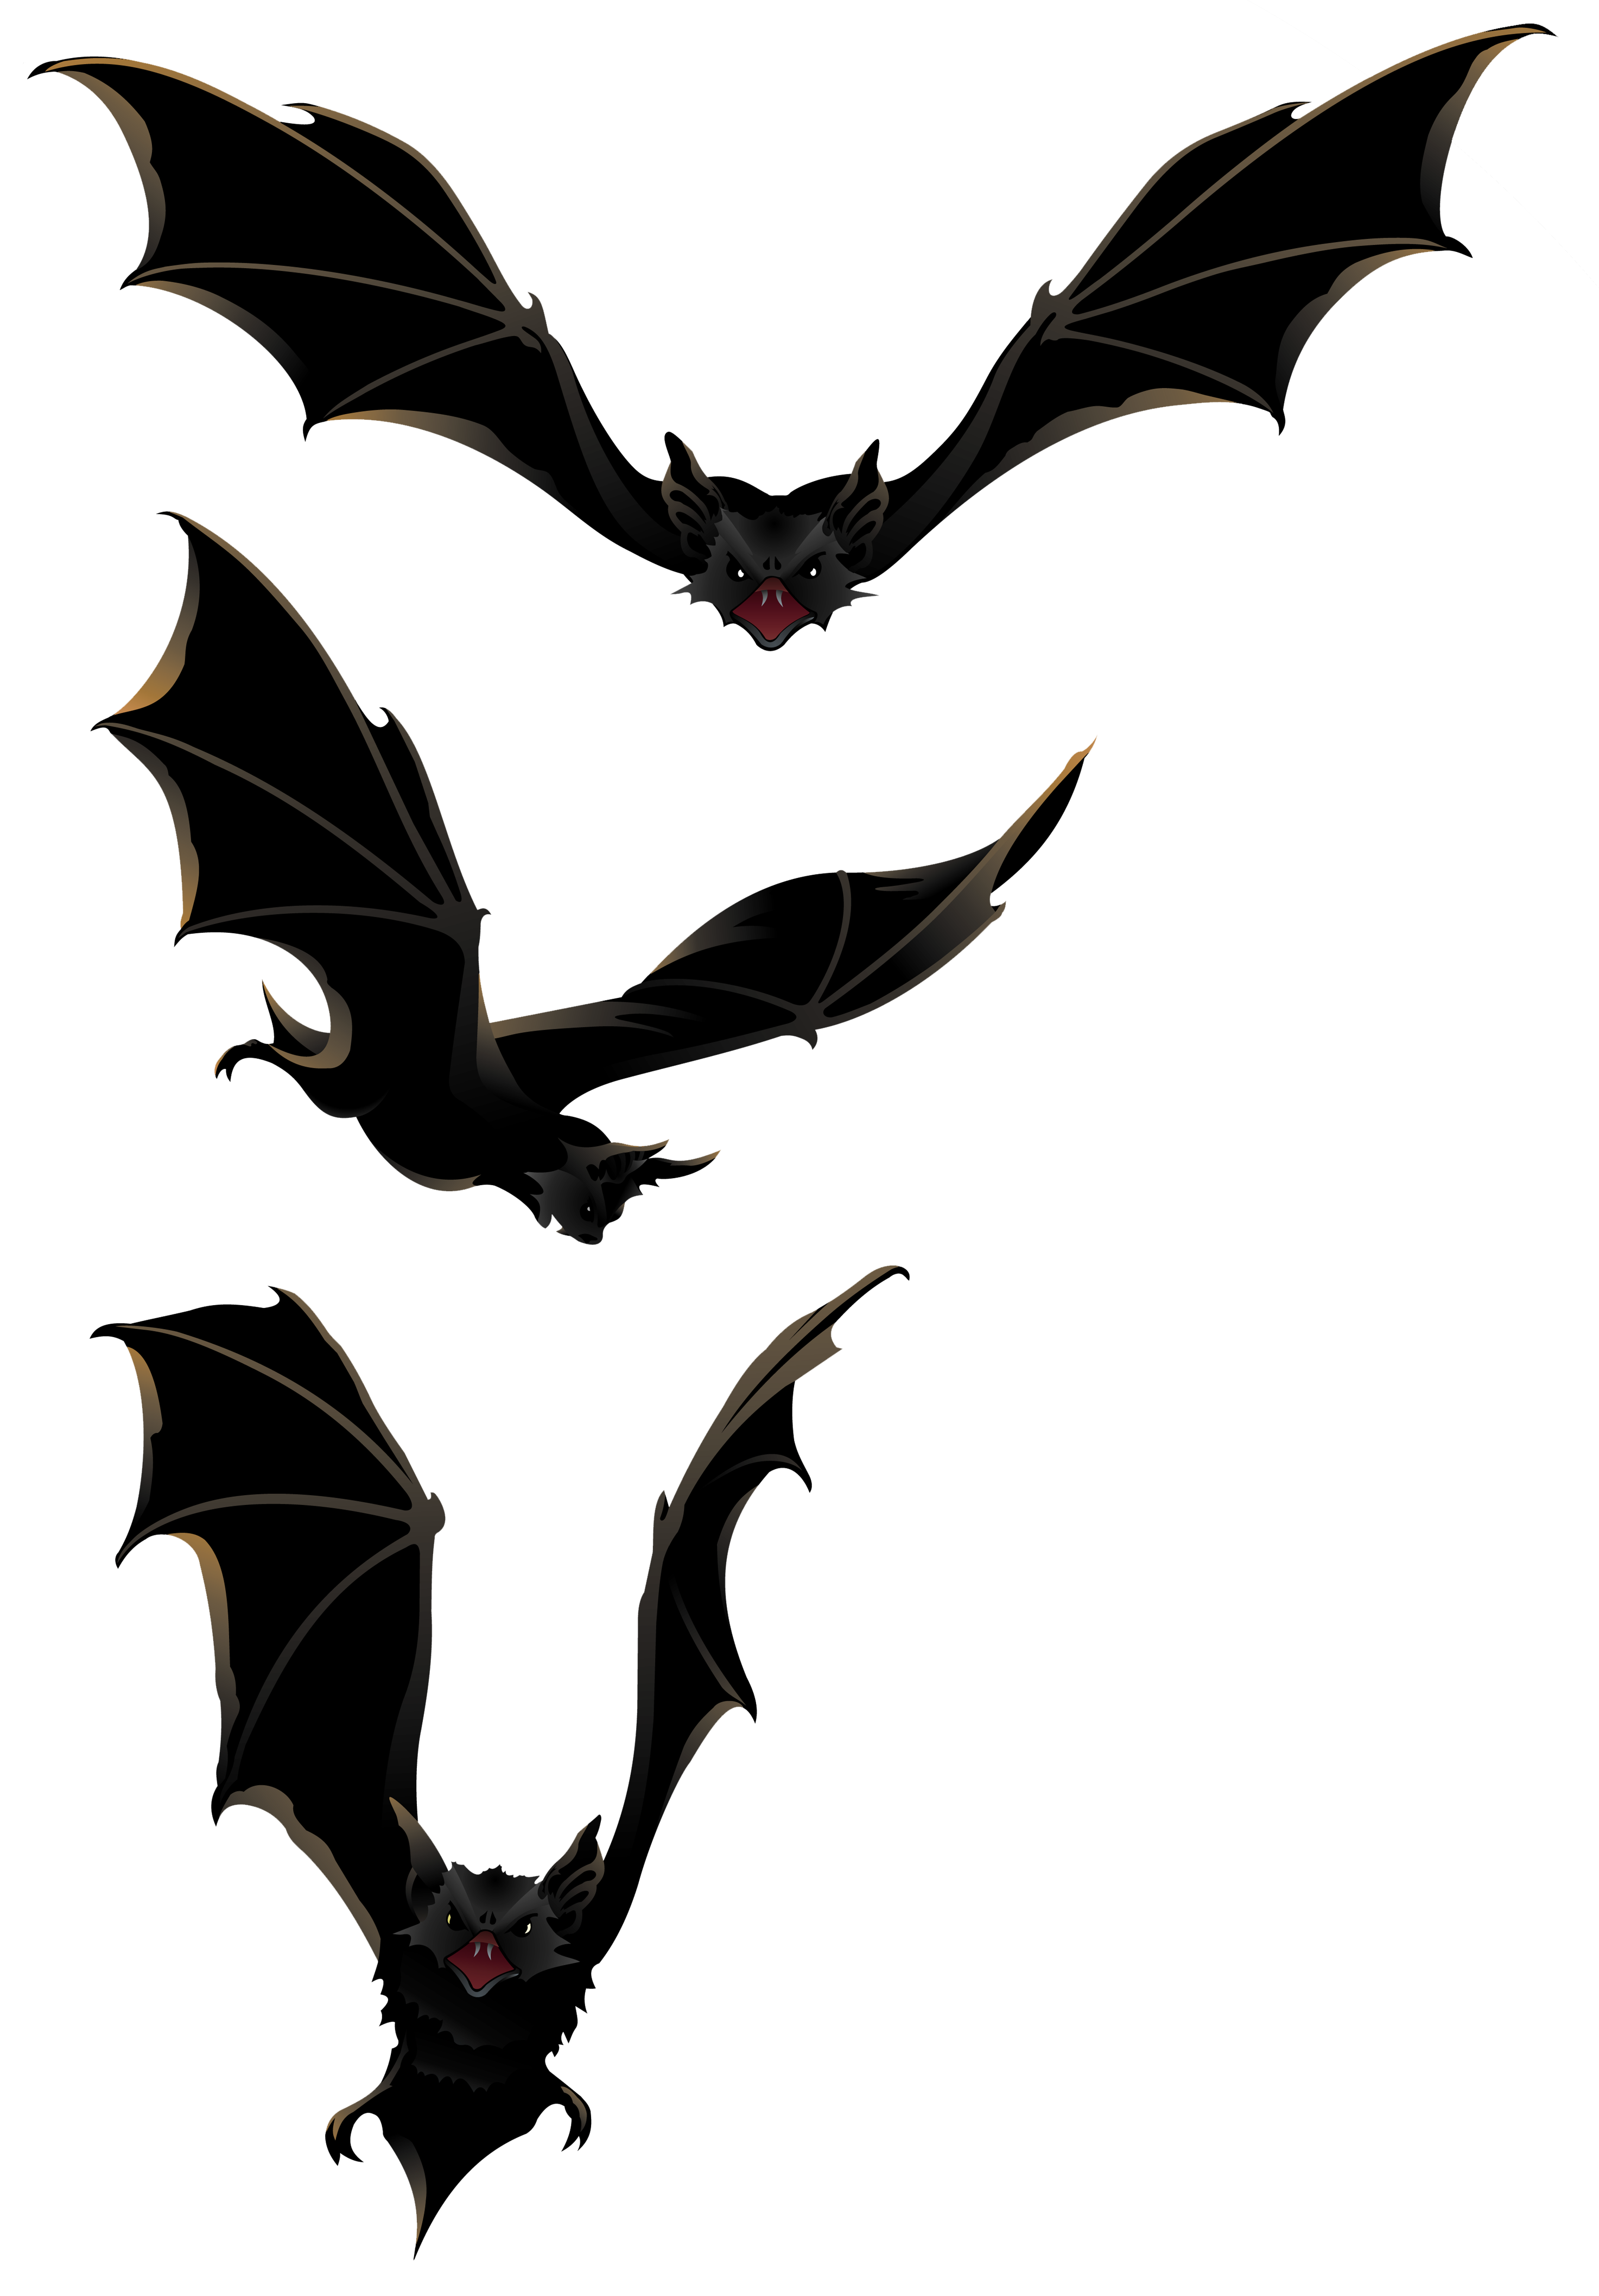 2946x4229 Collection Of Free Bats Vector Bat Animal. Download On Ubisafe